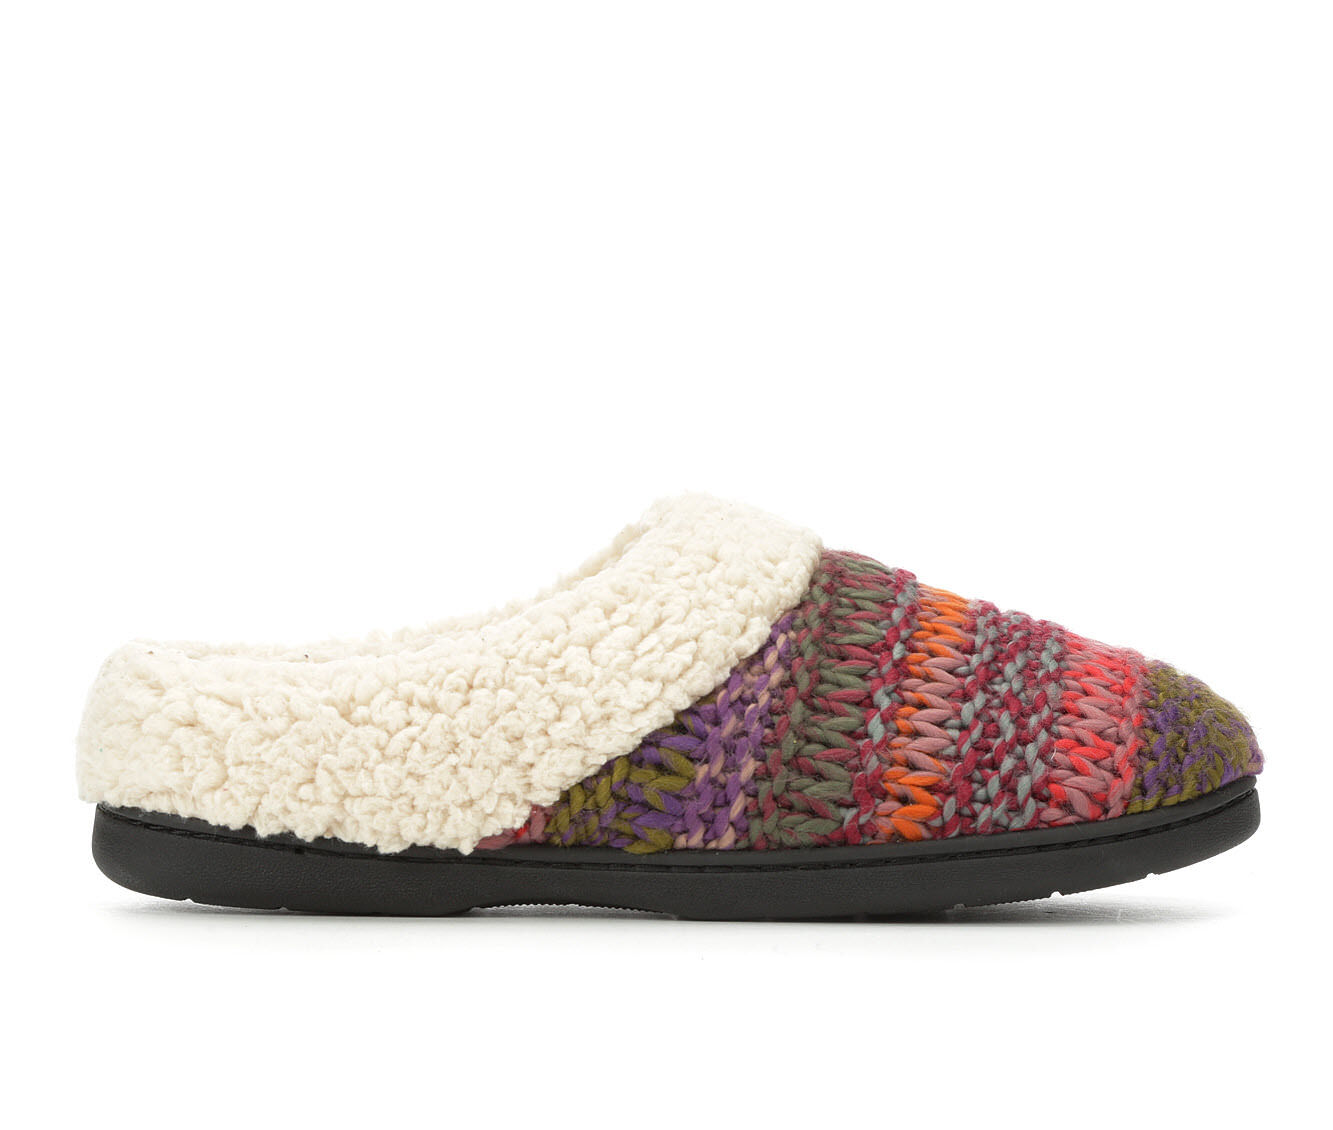 buy discount Dearfoams Chunky Knit Clog Red Multi